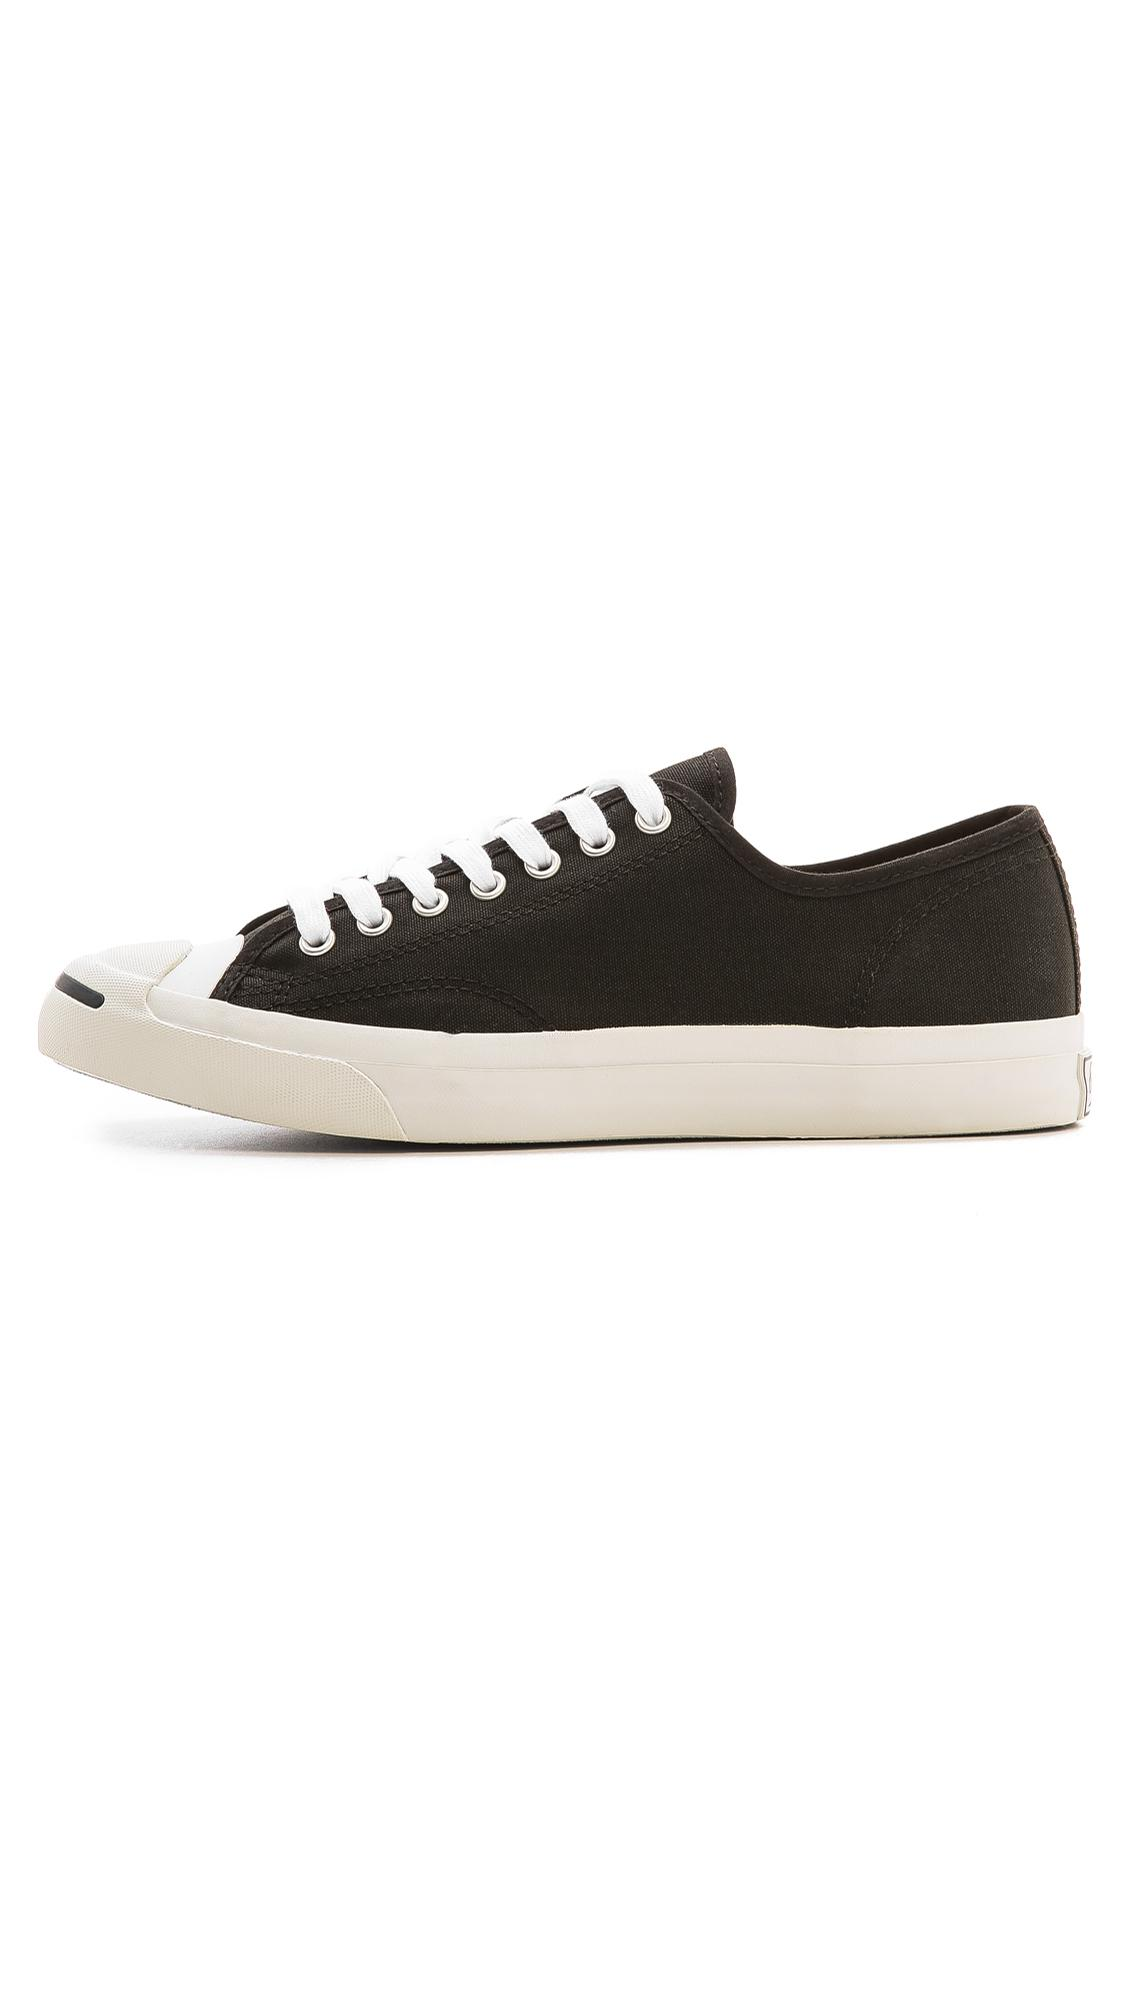 9328a4adac7feb Converse Jack Purcell Canvas Sneakers in Black for Men - Lyst